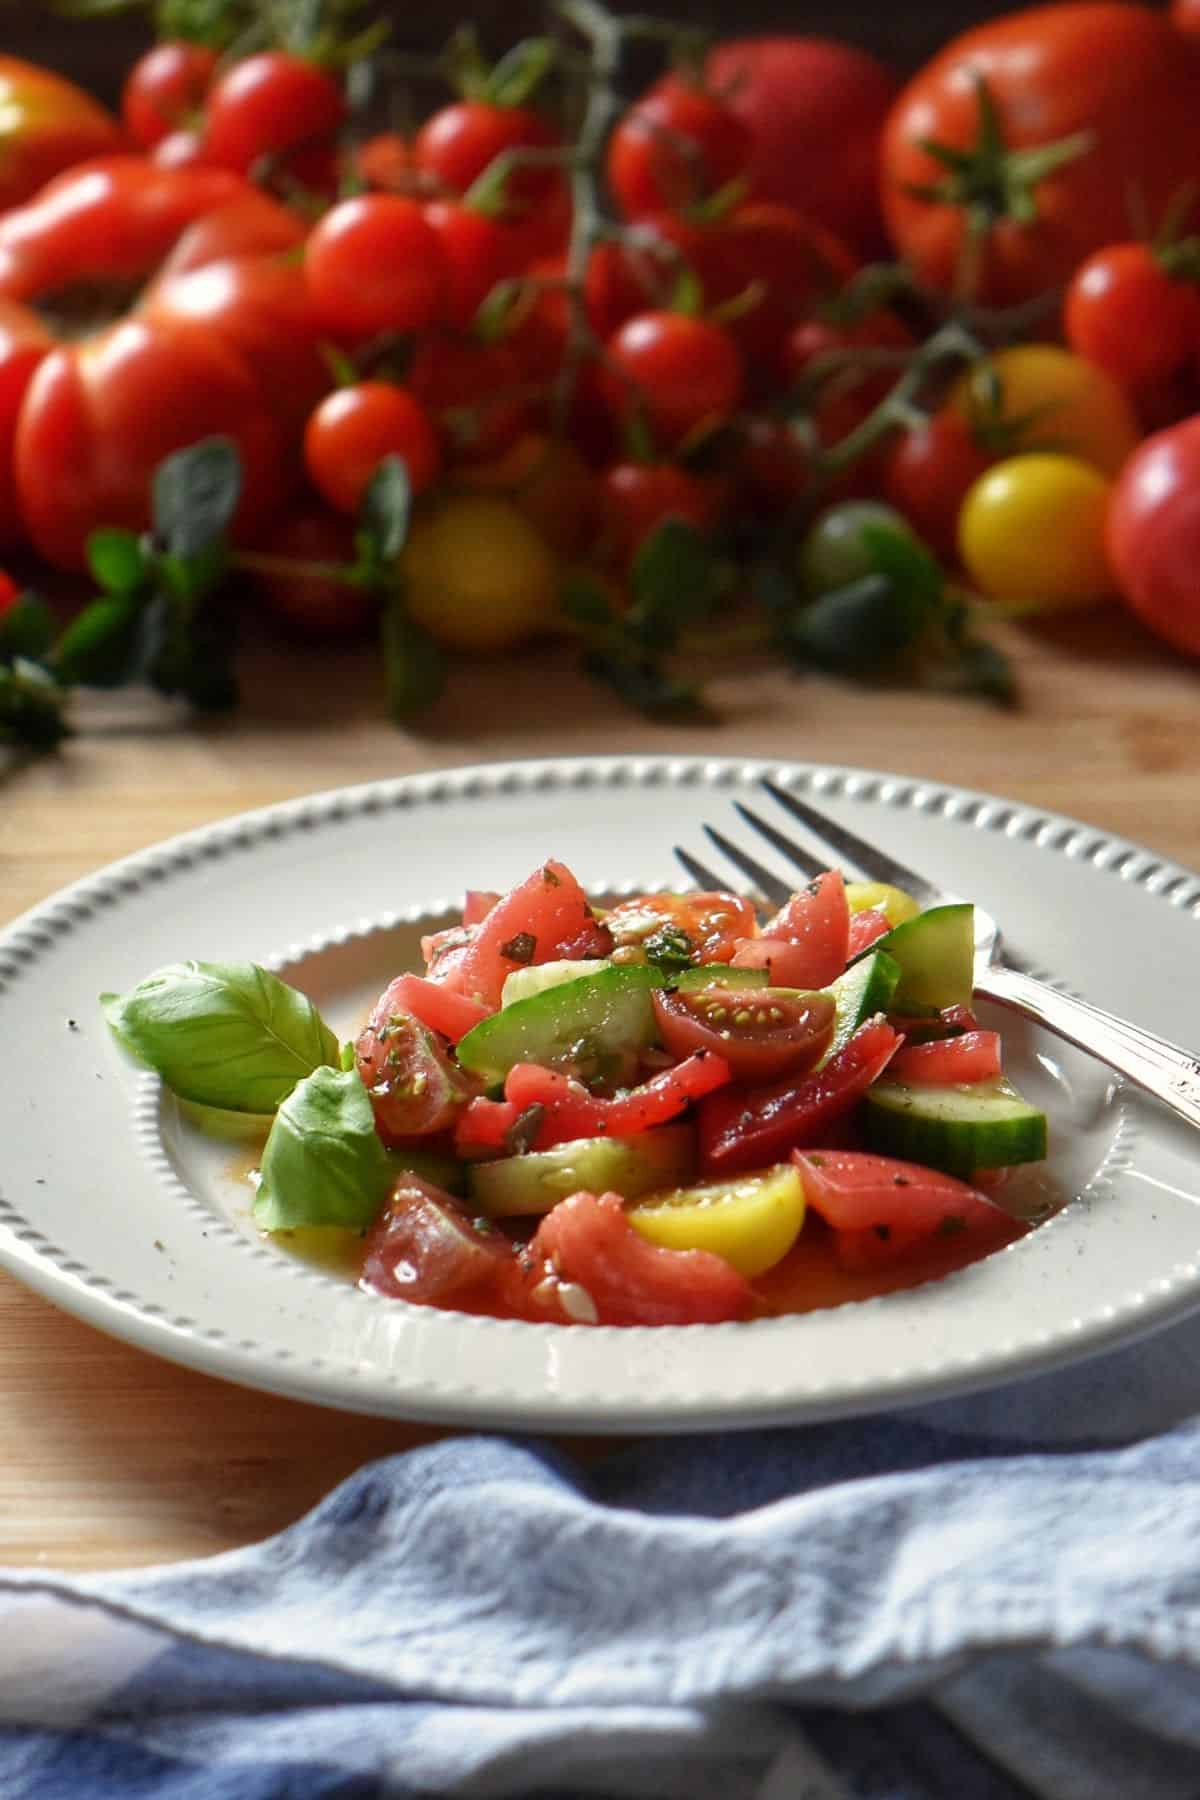 Tomato cucumber salad in a white plate; in the background a variety of fresh tomatoes.